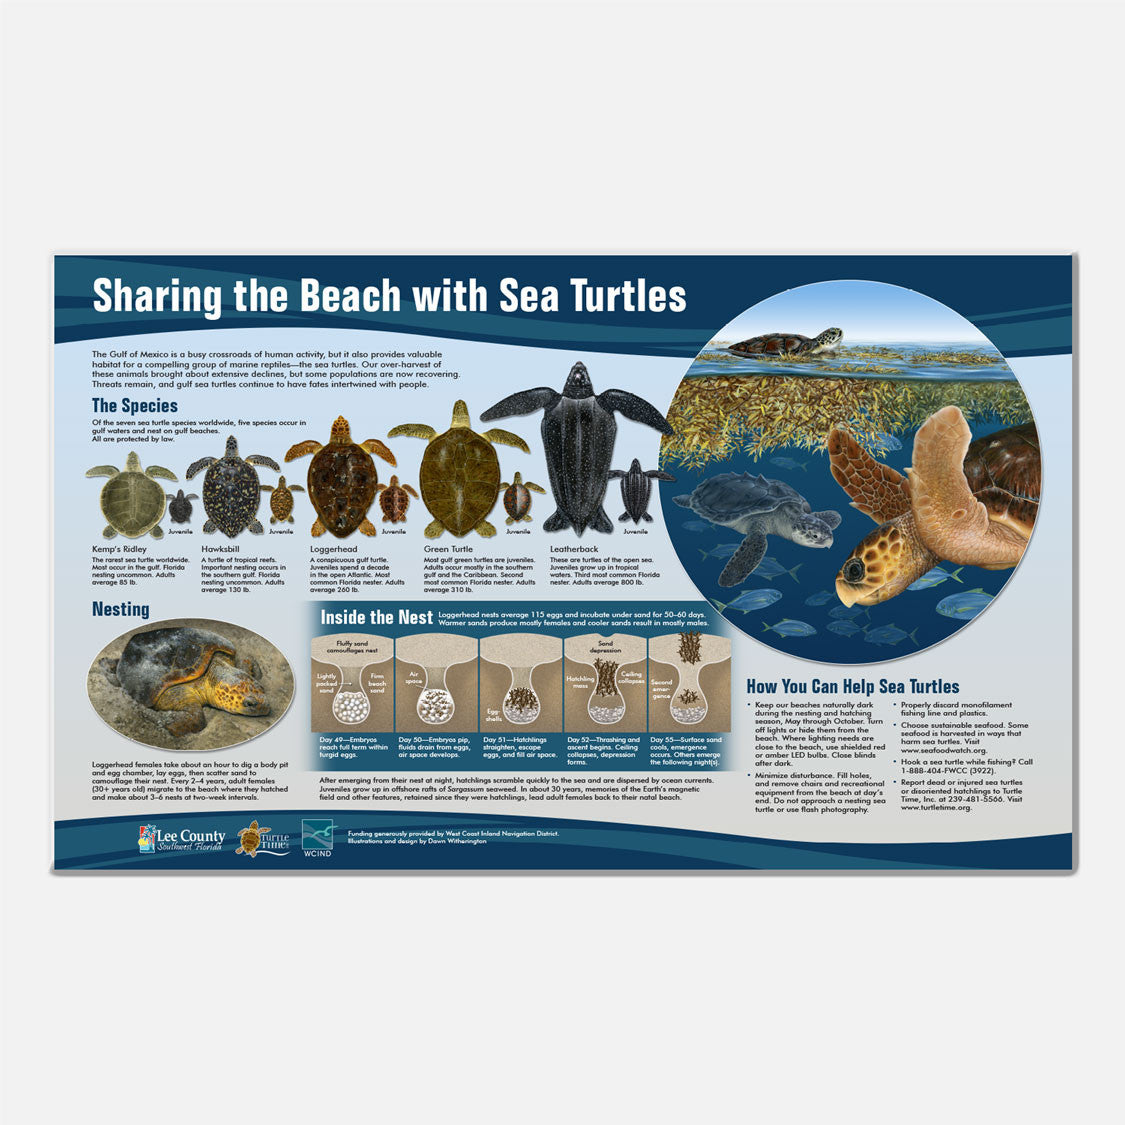 This beautifully illustrated display about Florida's five species of sea turtles is accurate in detail.